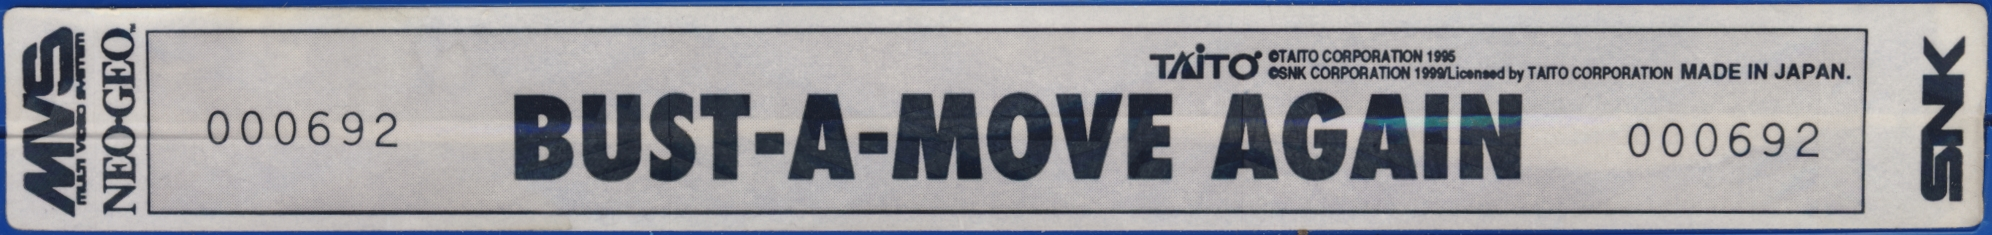 Bust a move again us label.jpg